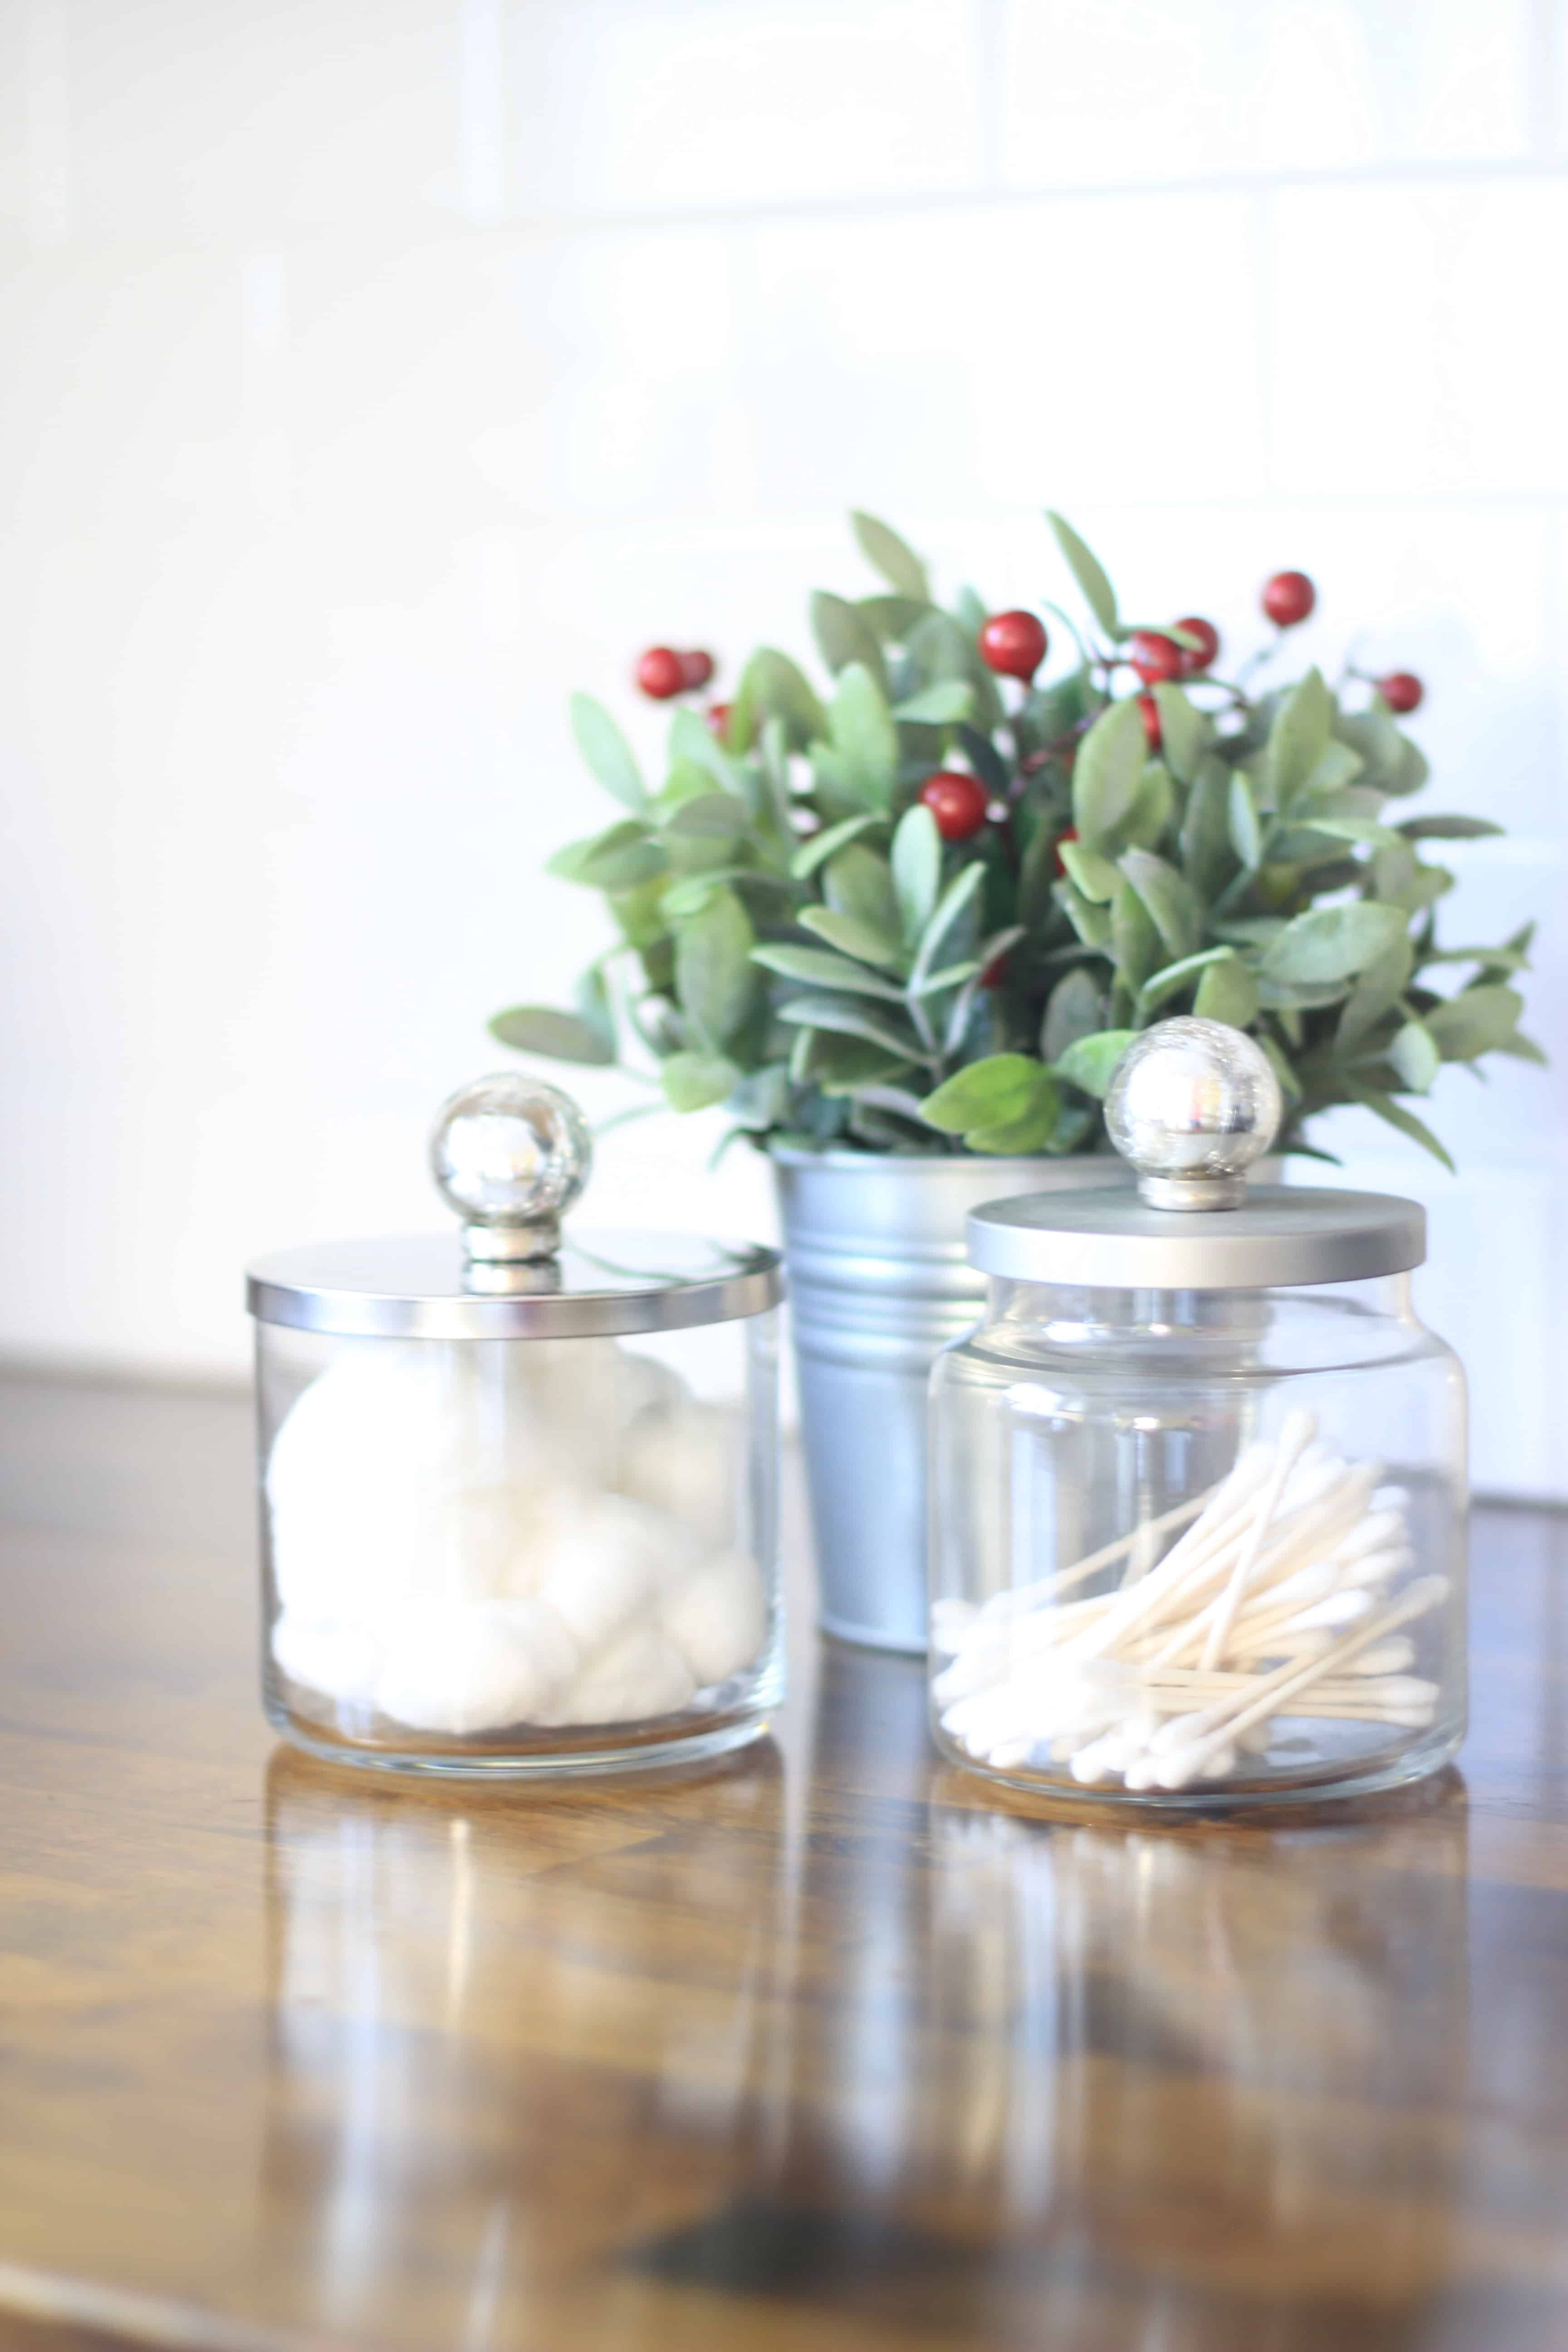 rustic bathroom containers | 12 Days of Craftmas | DIY Gifts | Crafty Gifts | Christmas Gifts DIY | Gift Ideas | DIY Christmas Gifts